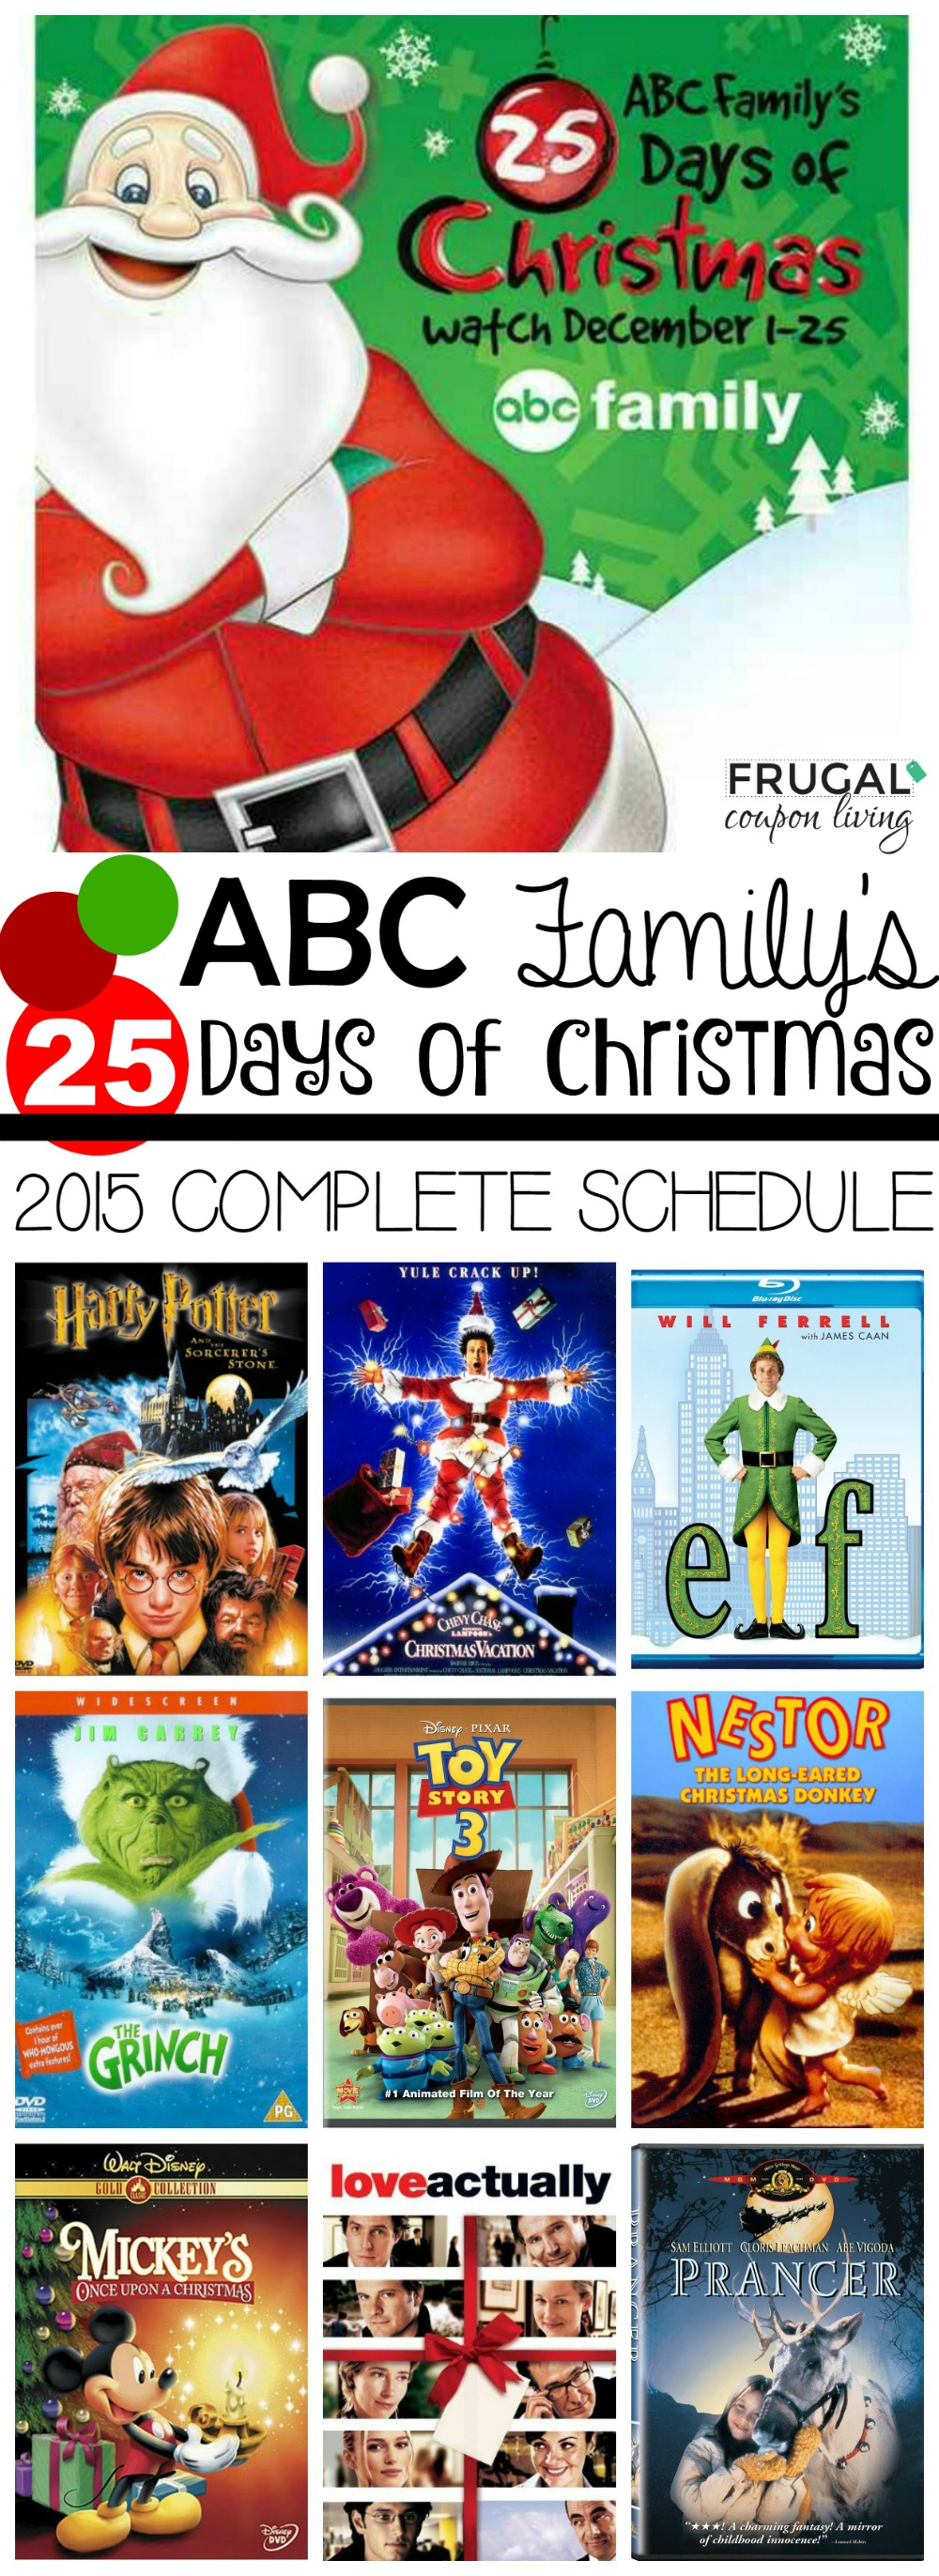 abc family 25 days of christmas schedule 2015 frugal coupon living - Abc 25 Days Of Christmas